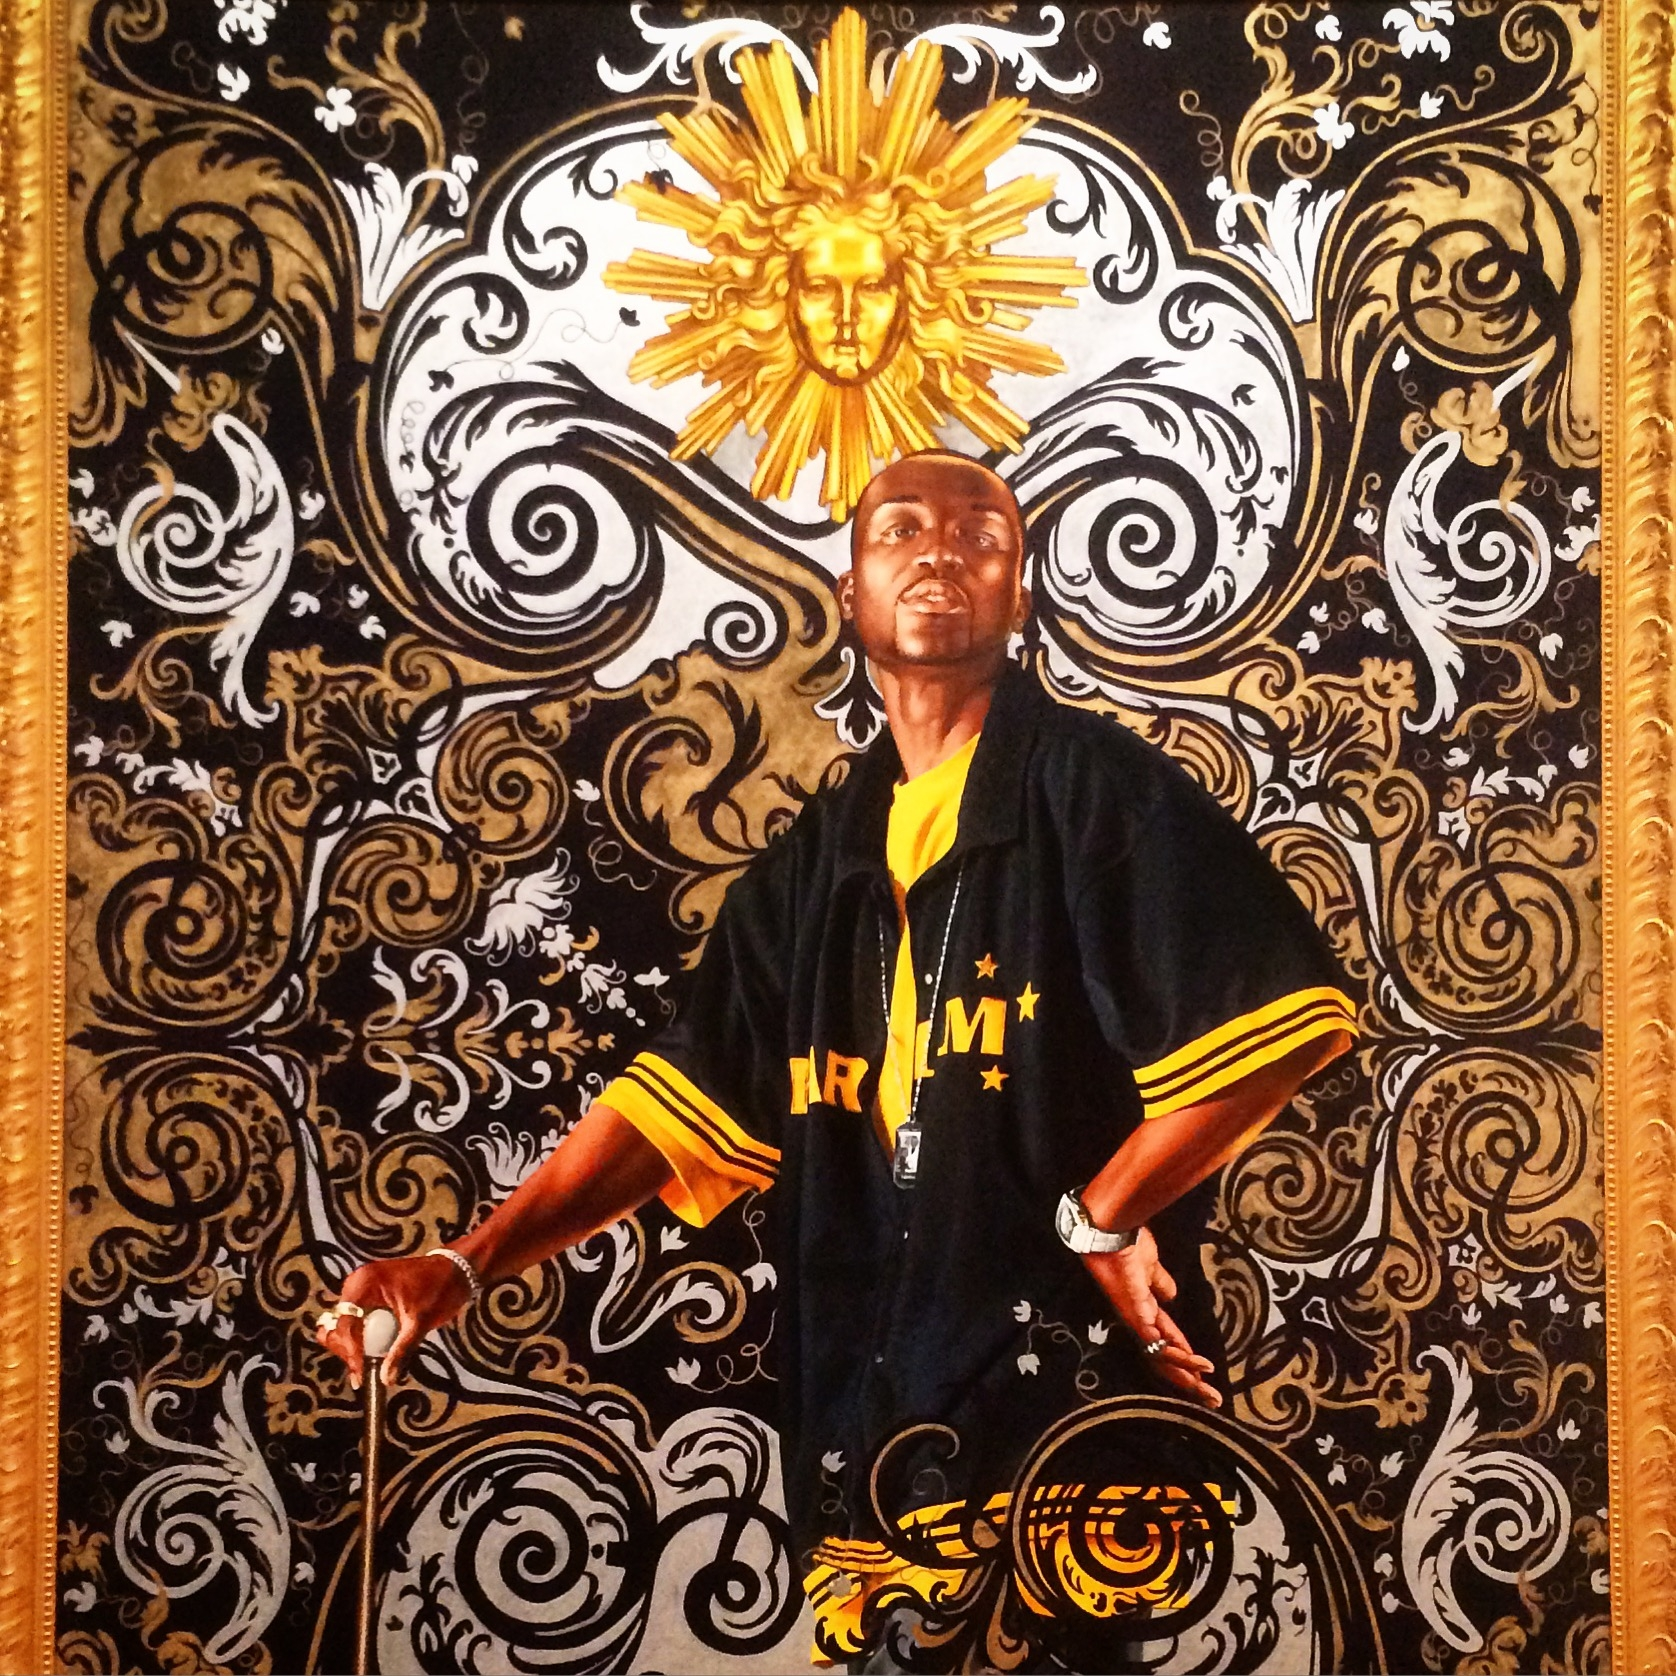 Kehinde Wiley African American Art Amazing Paintings Black Excellence Brooklyn Museum Social Commentary Racism